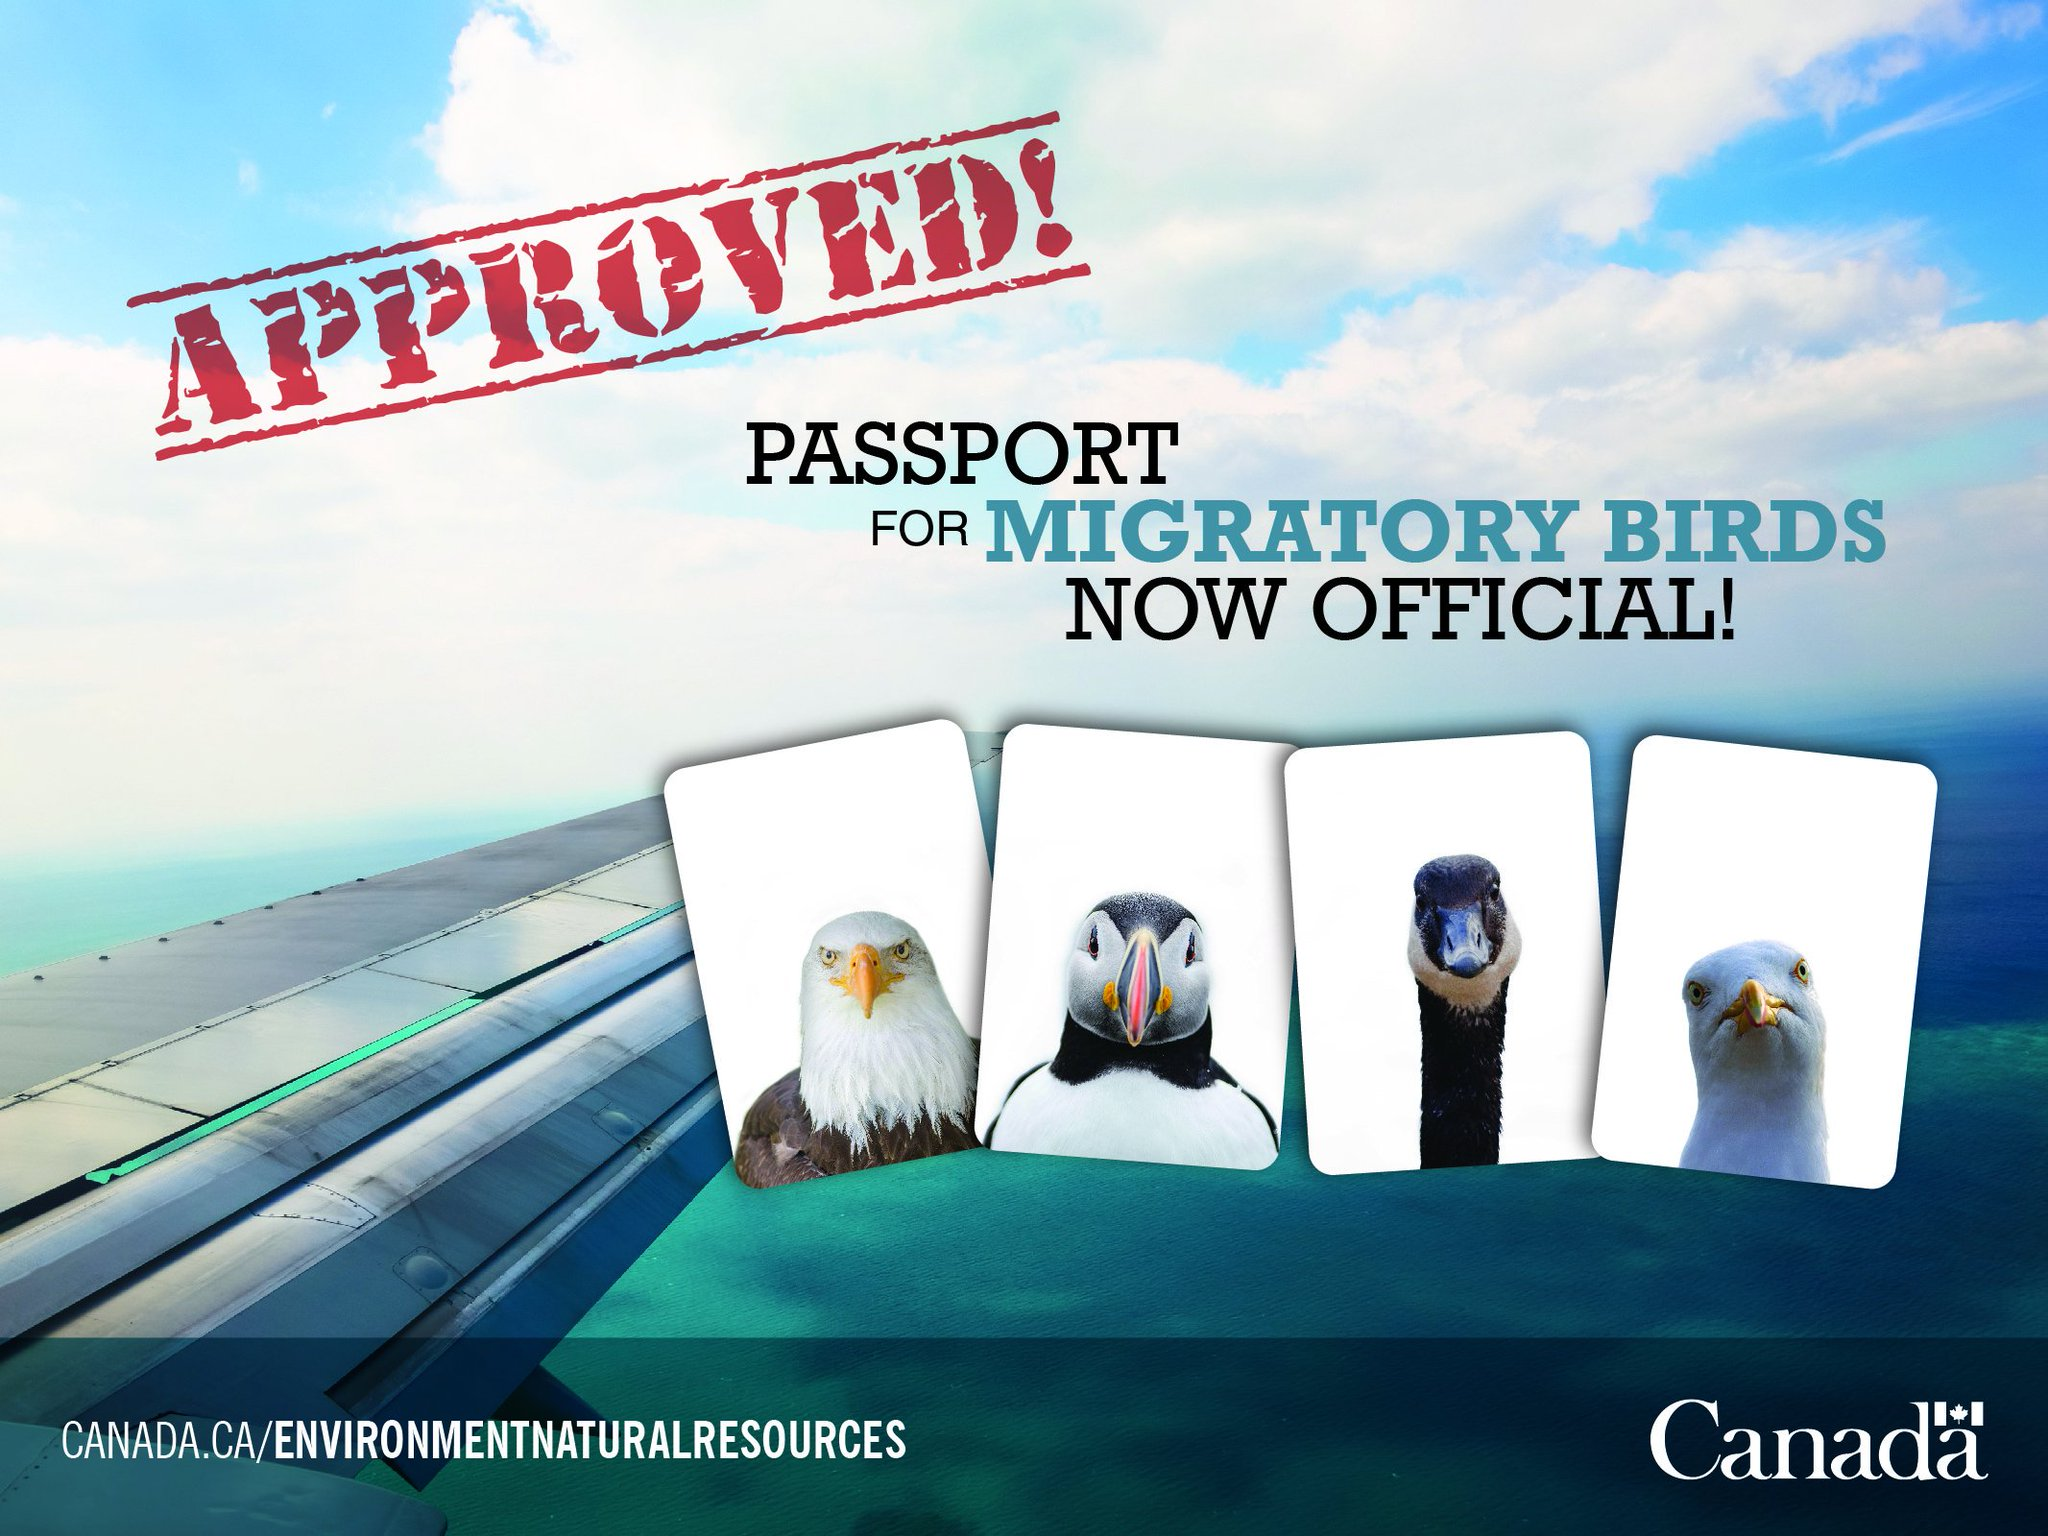 Pleased to announce new #passport for Migratory Birds. Thanks to @passportcan for helping.  #AprilFools #BirdYear https://t.co/1x14Vd6nMF